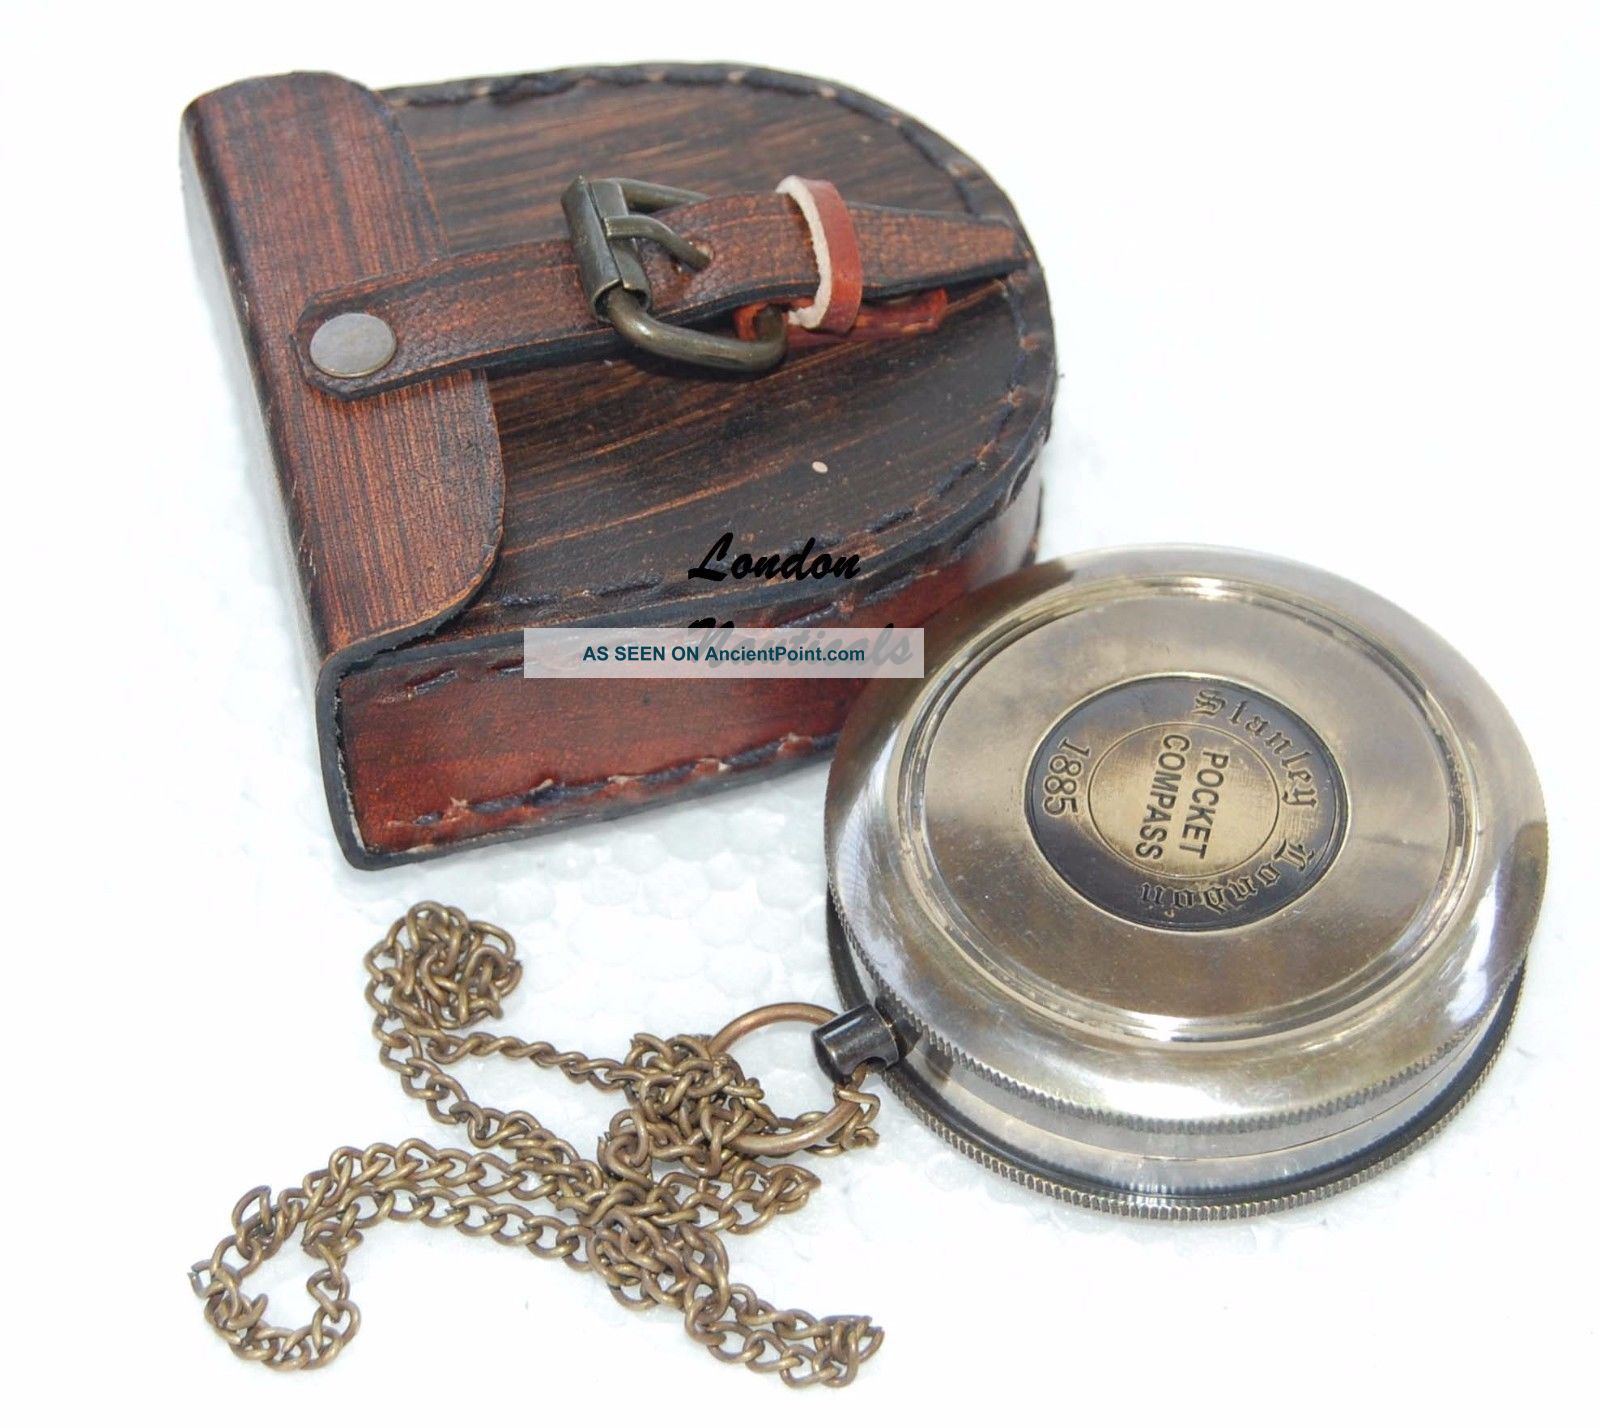 Antique Vintage Collectible Poem Pocket Compass With Robert Frost Poem Inside Compasses photo